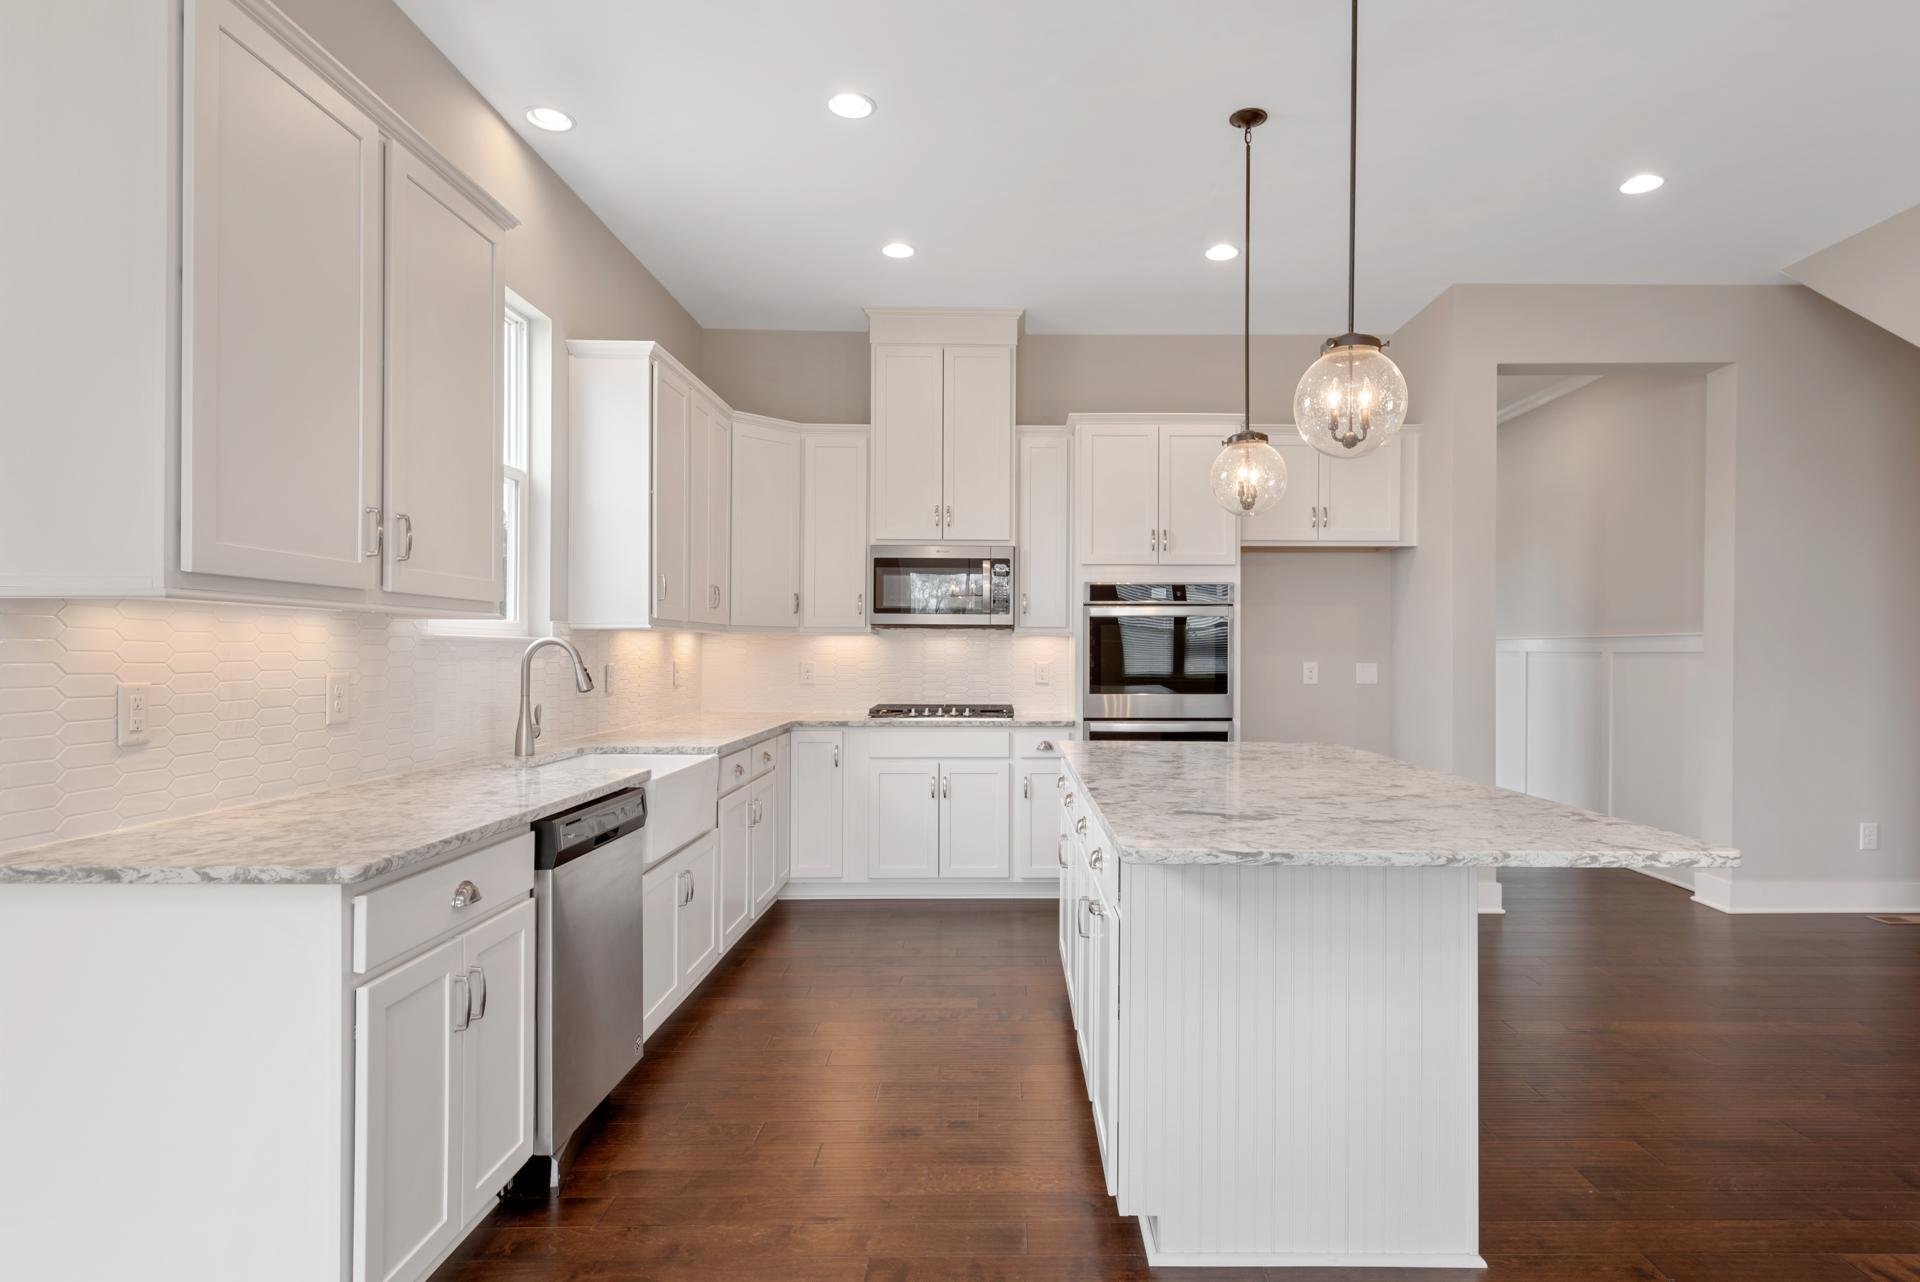 Kitchen featured in the Adeline By Drees Homes in Nashville, TN